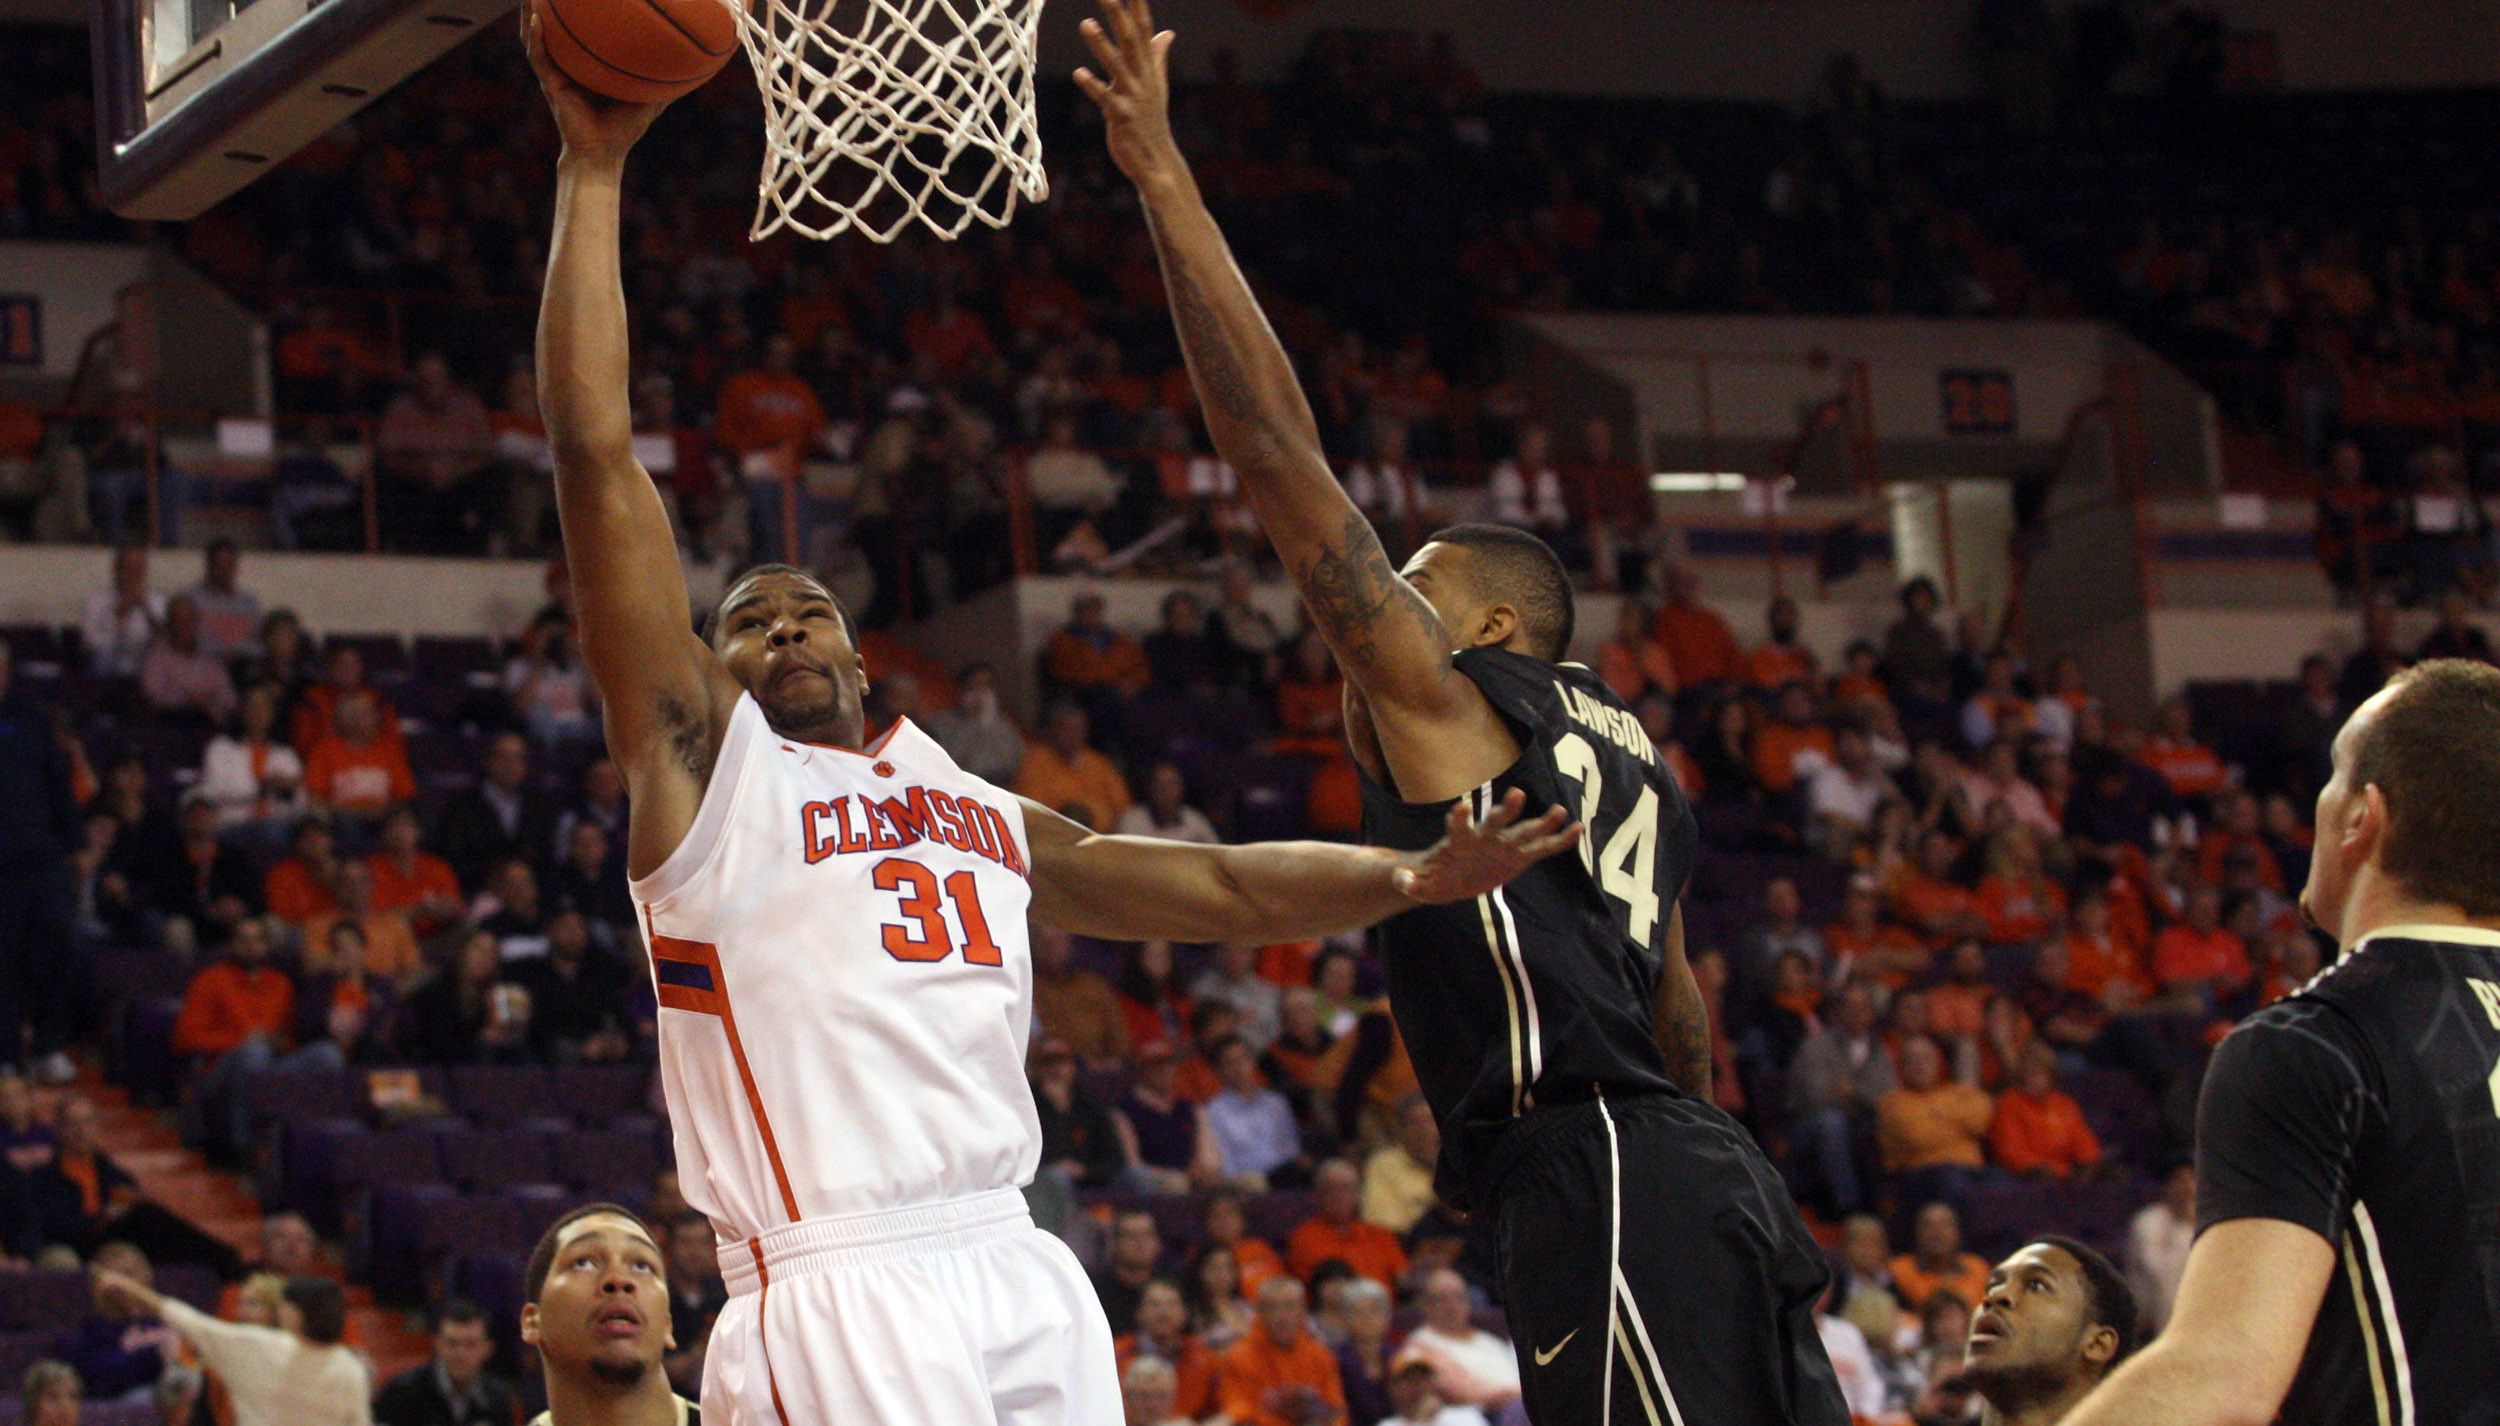 Sluggish First Half Costs Clemson in 73-61 Loss to Purdue on Wednesday